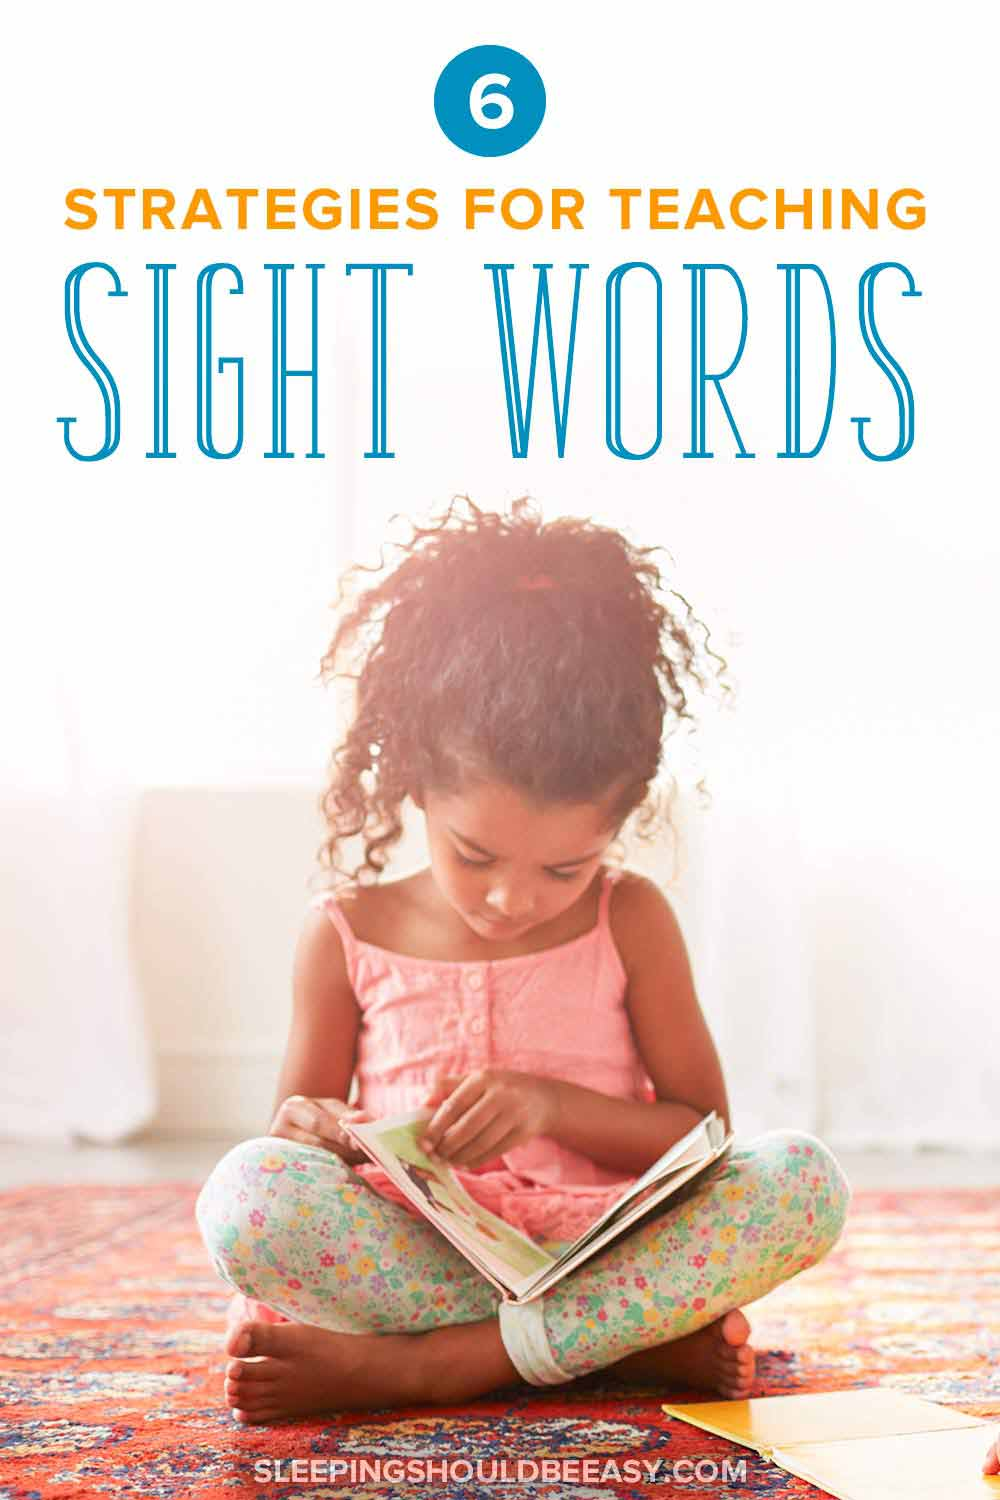 Strategies for teaching sight words